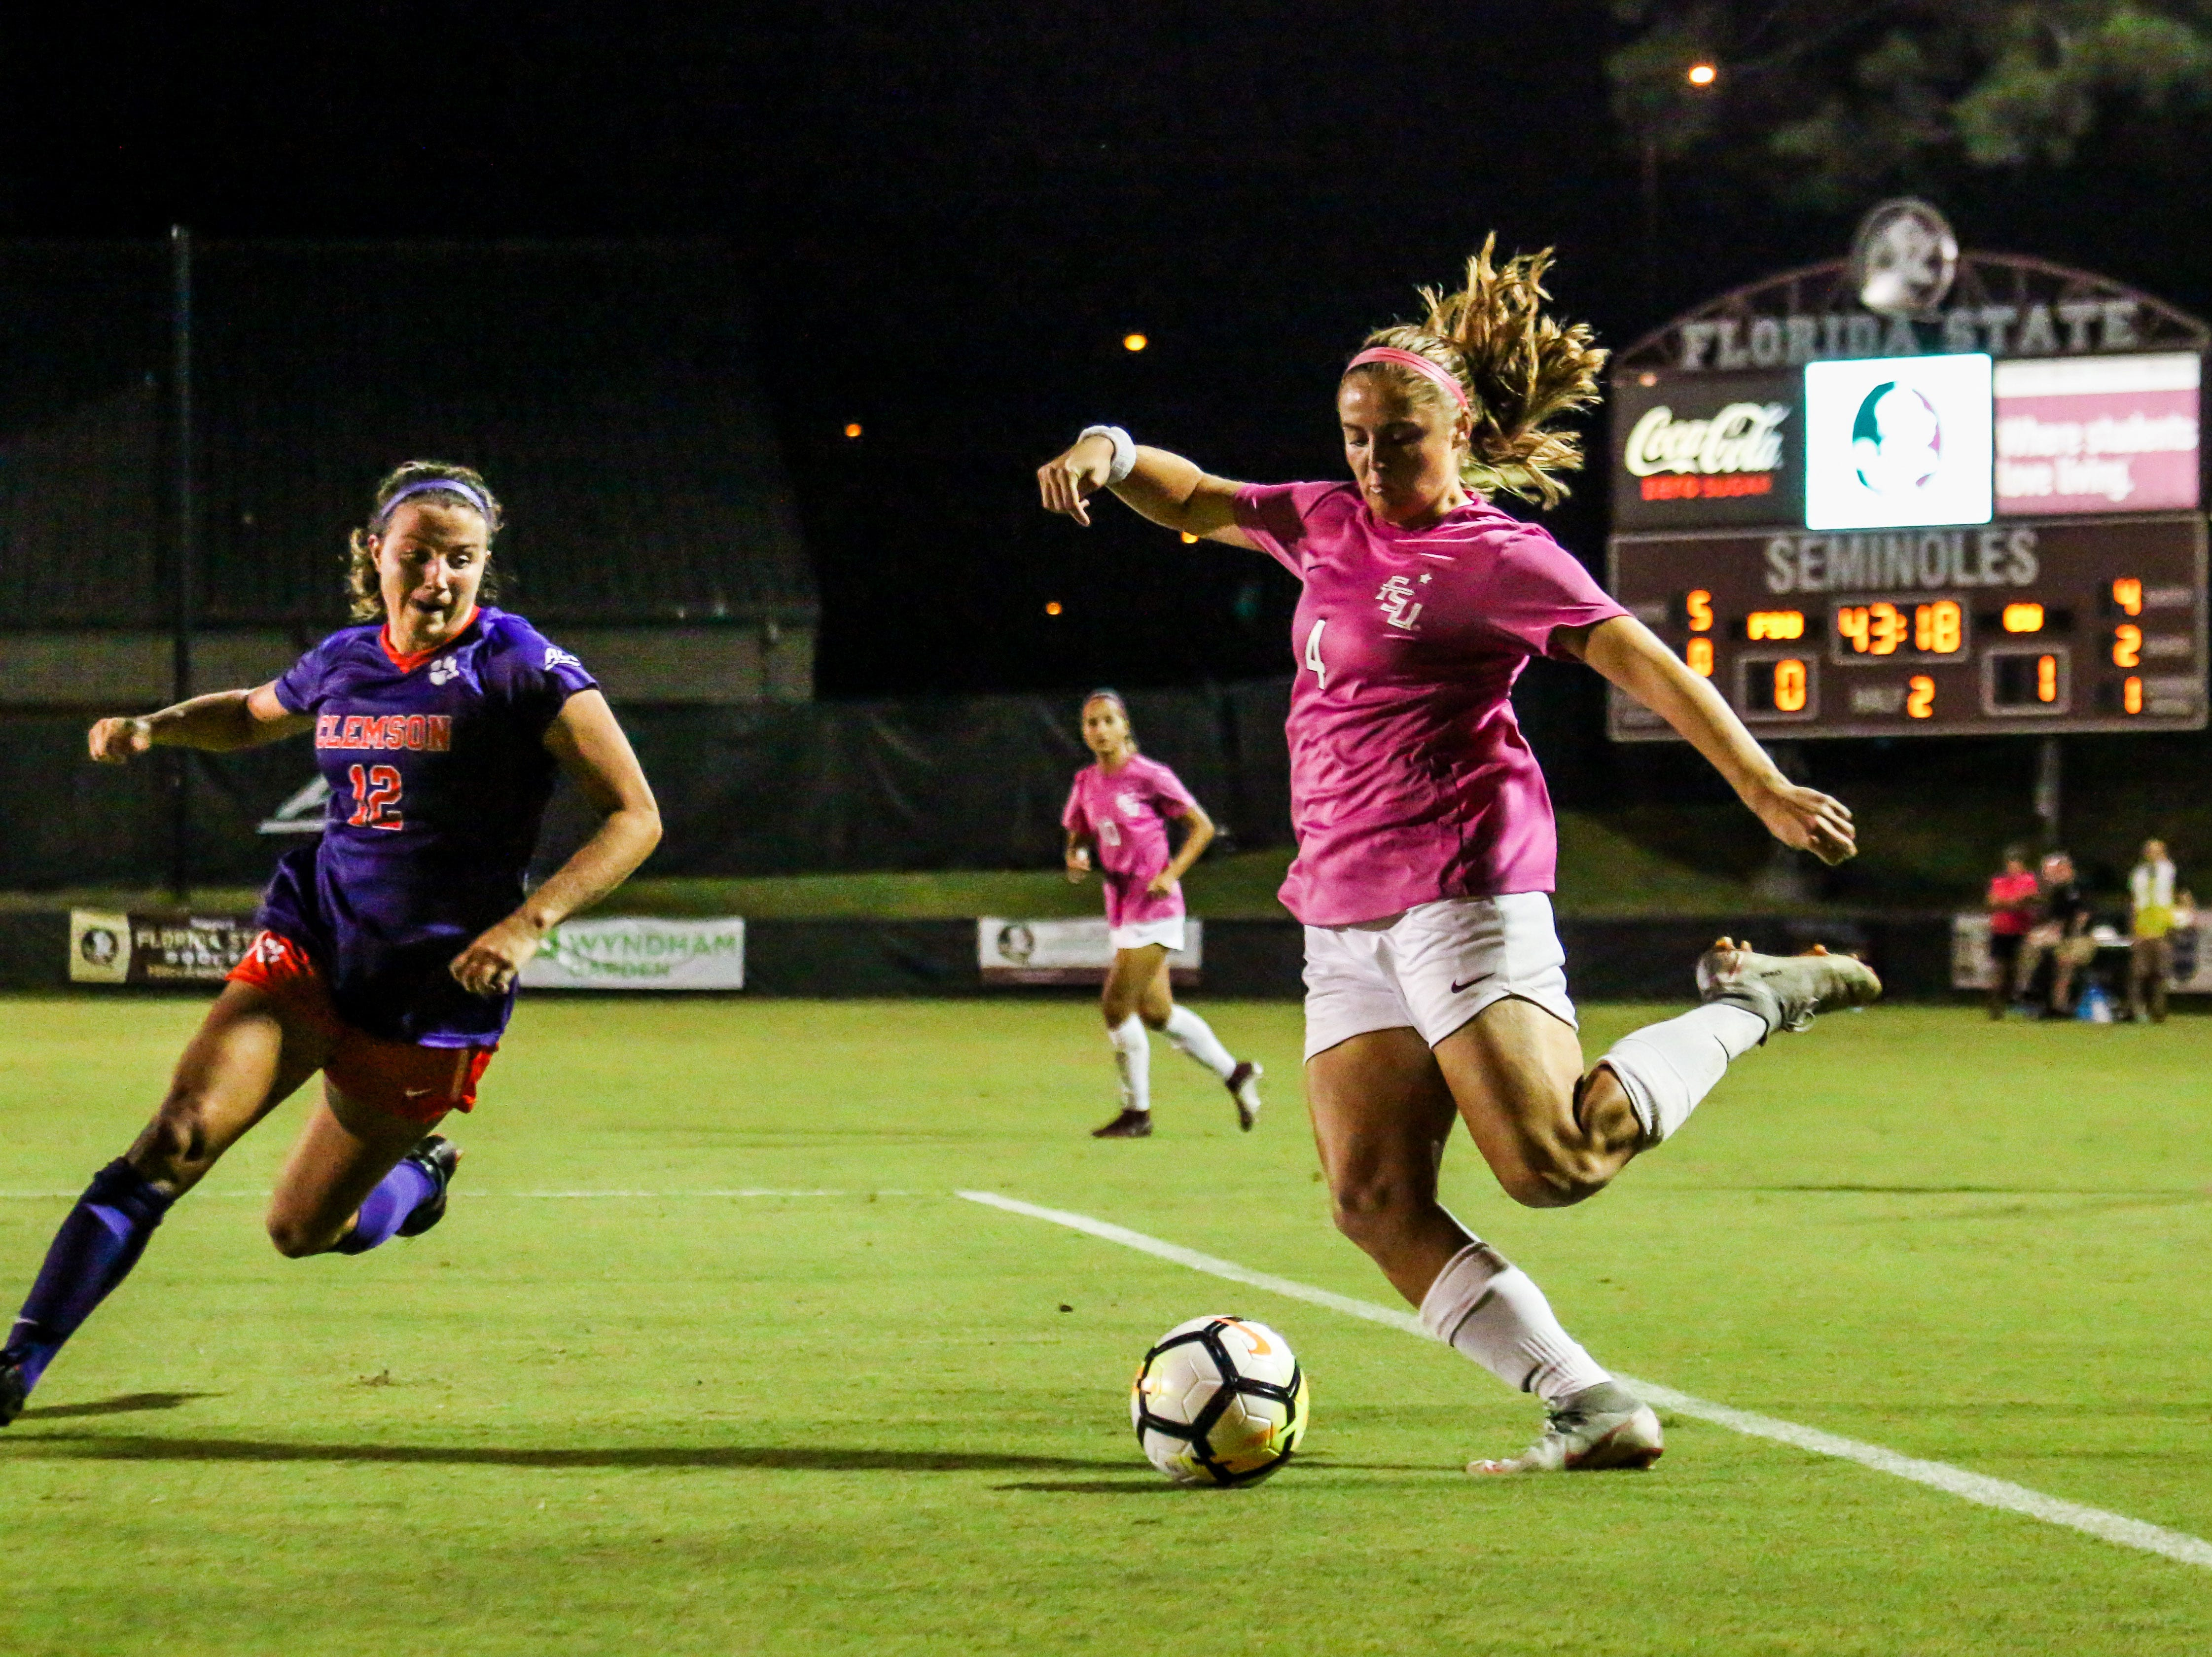 Kristina Lynch (4) and the rest of the Florida State Women's Soccer team had a very attack heavy game but were unable to breakthrough Clemson's defense on Thursday, October 4th at the Seminole Soccer Complex.